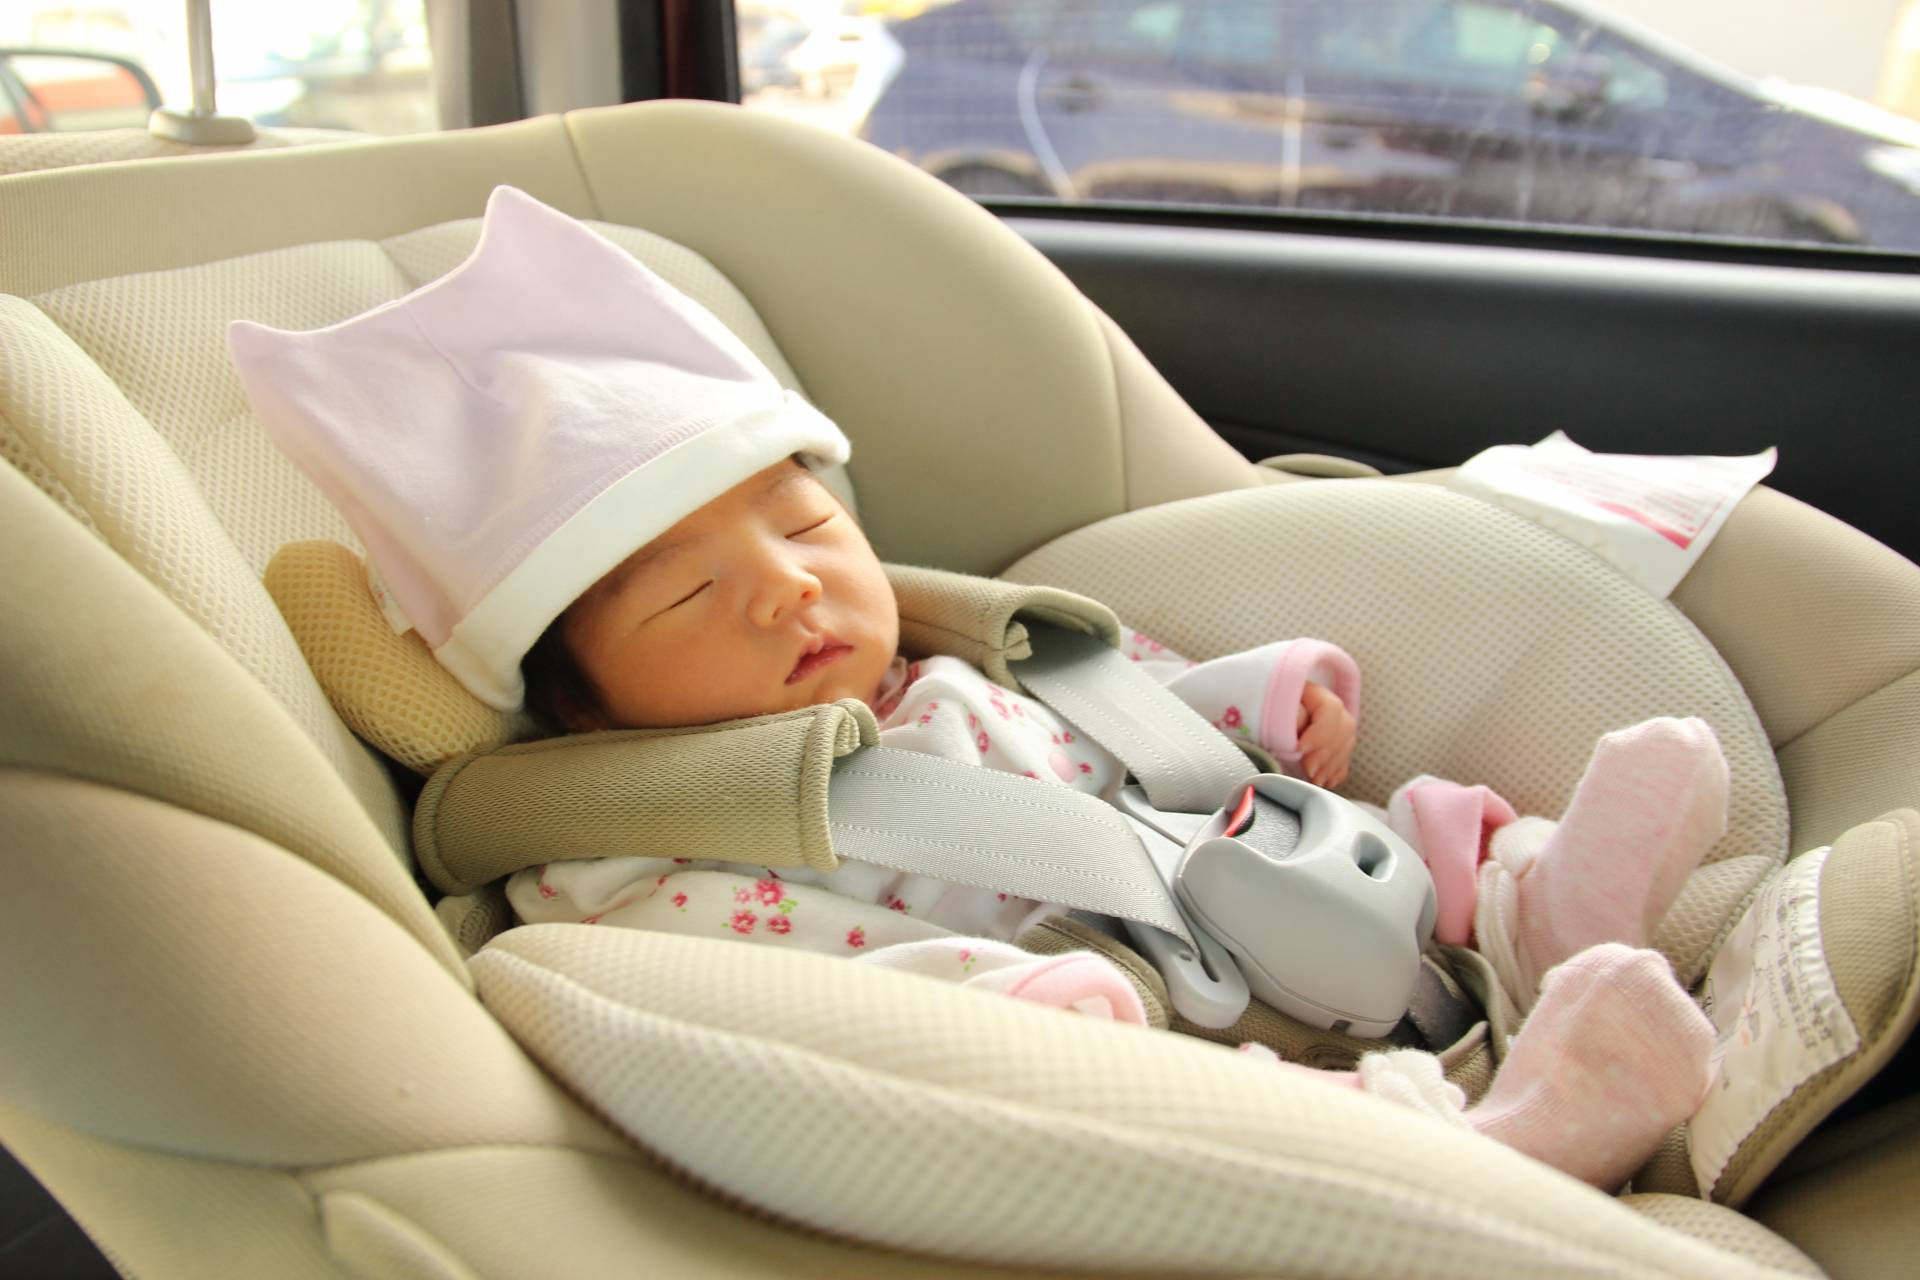 Baby/Child Seat Laws in Japan – Tips for Taxi and Car Rental